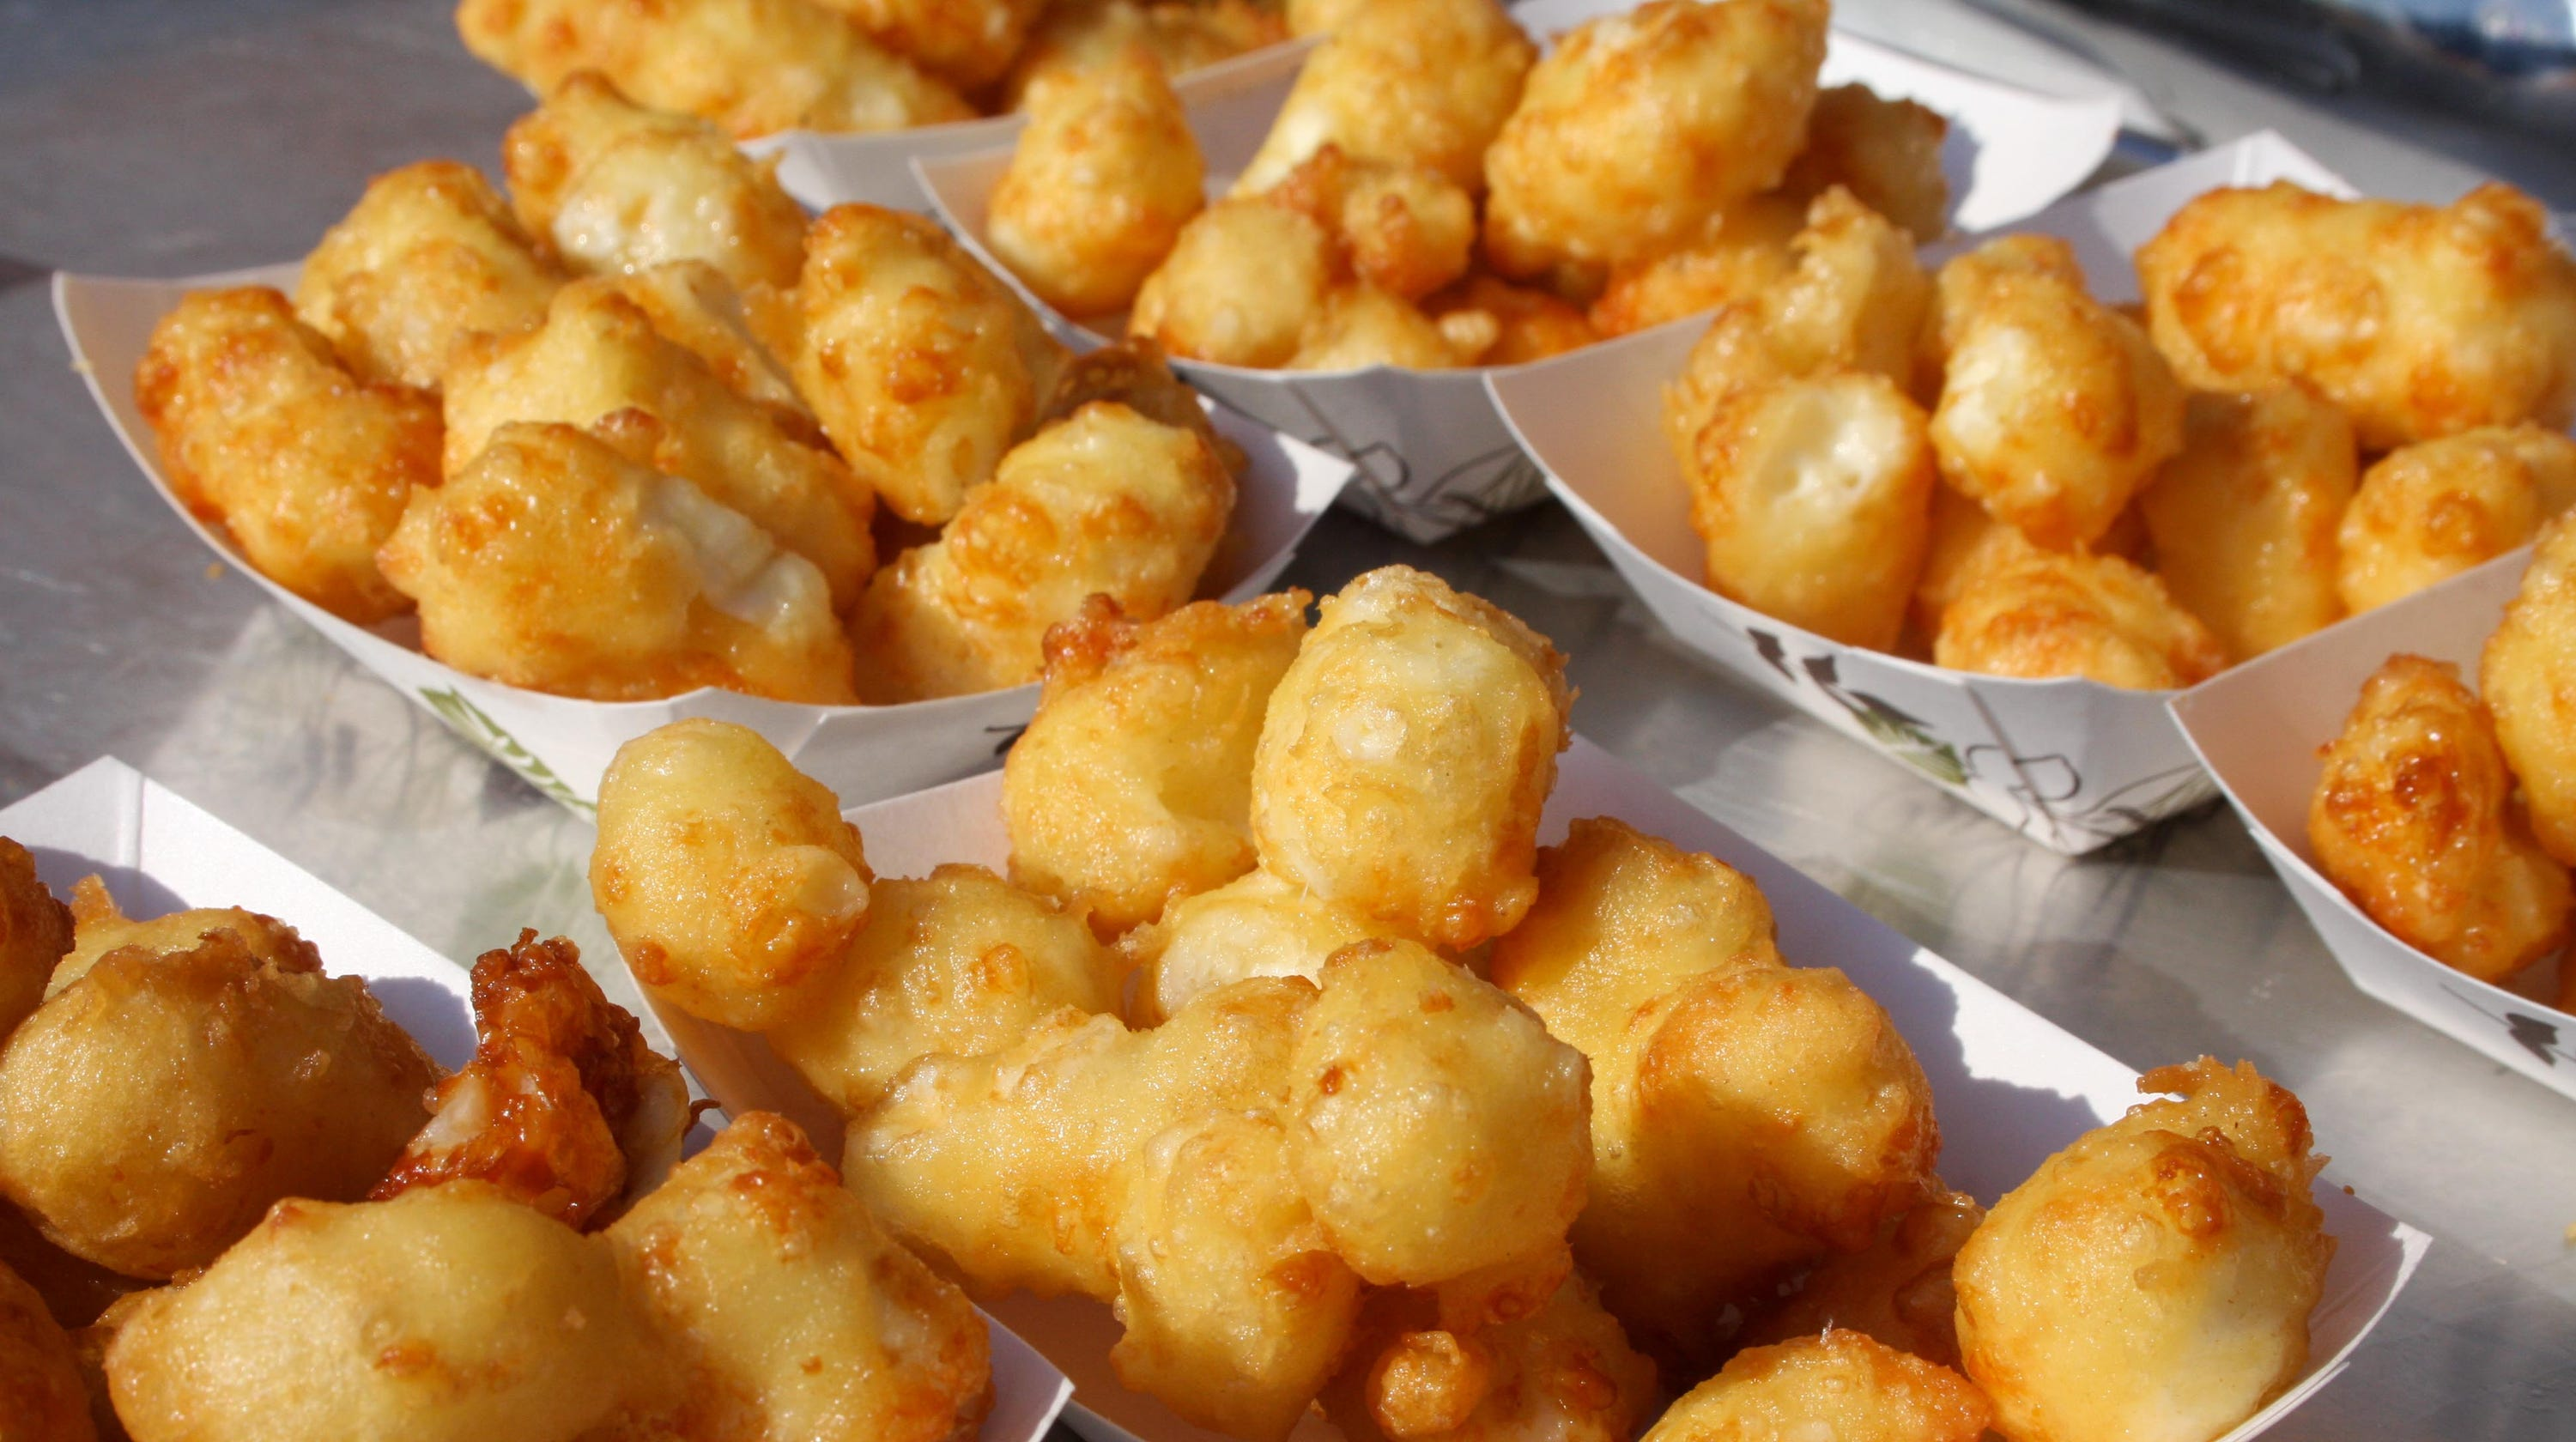 Almost Famous Chimichangas cheese curd day poll asks wisconsin residents for their opinions